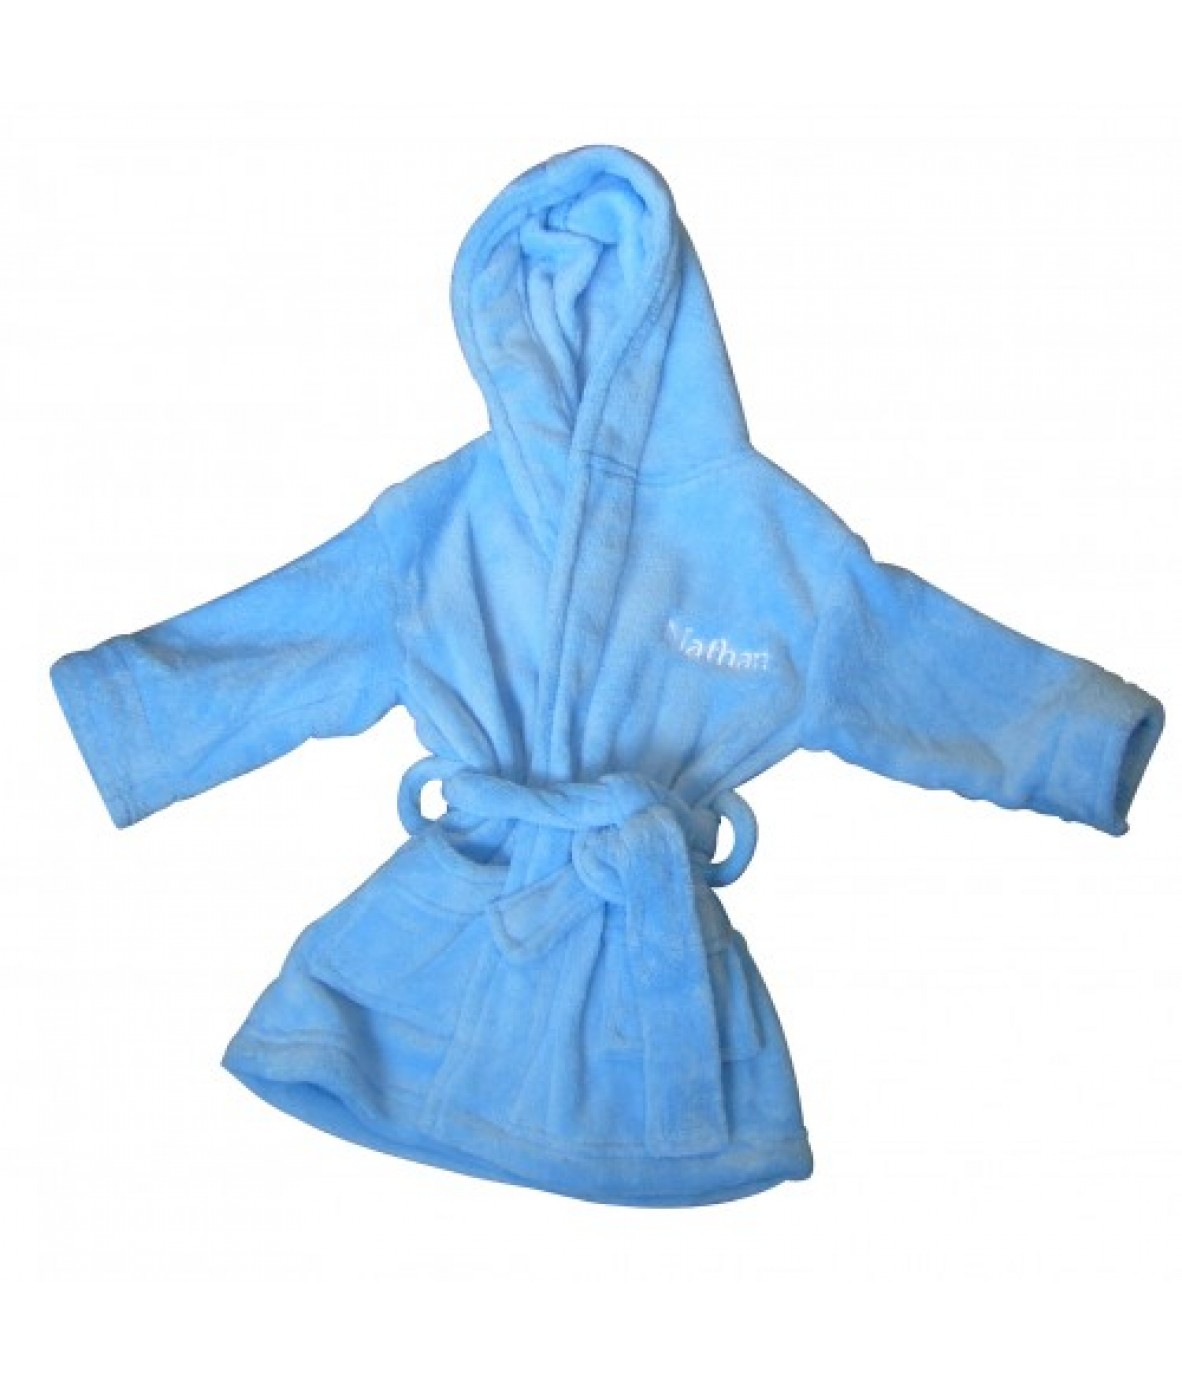 Personalised Baby Boys Dressing Gown Blue 6 12 Months Just